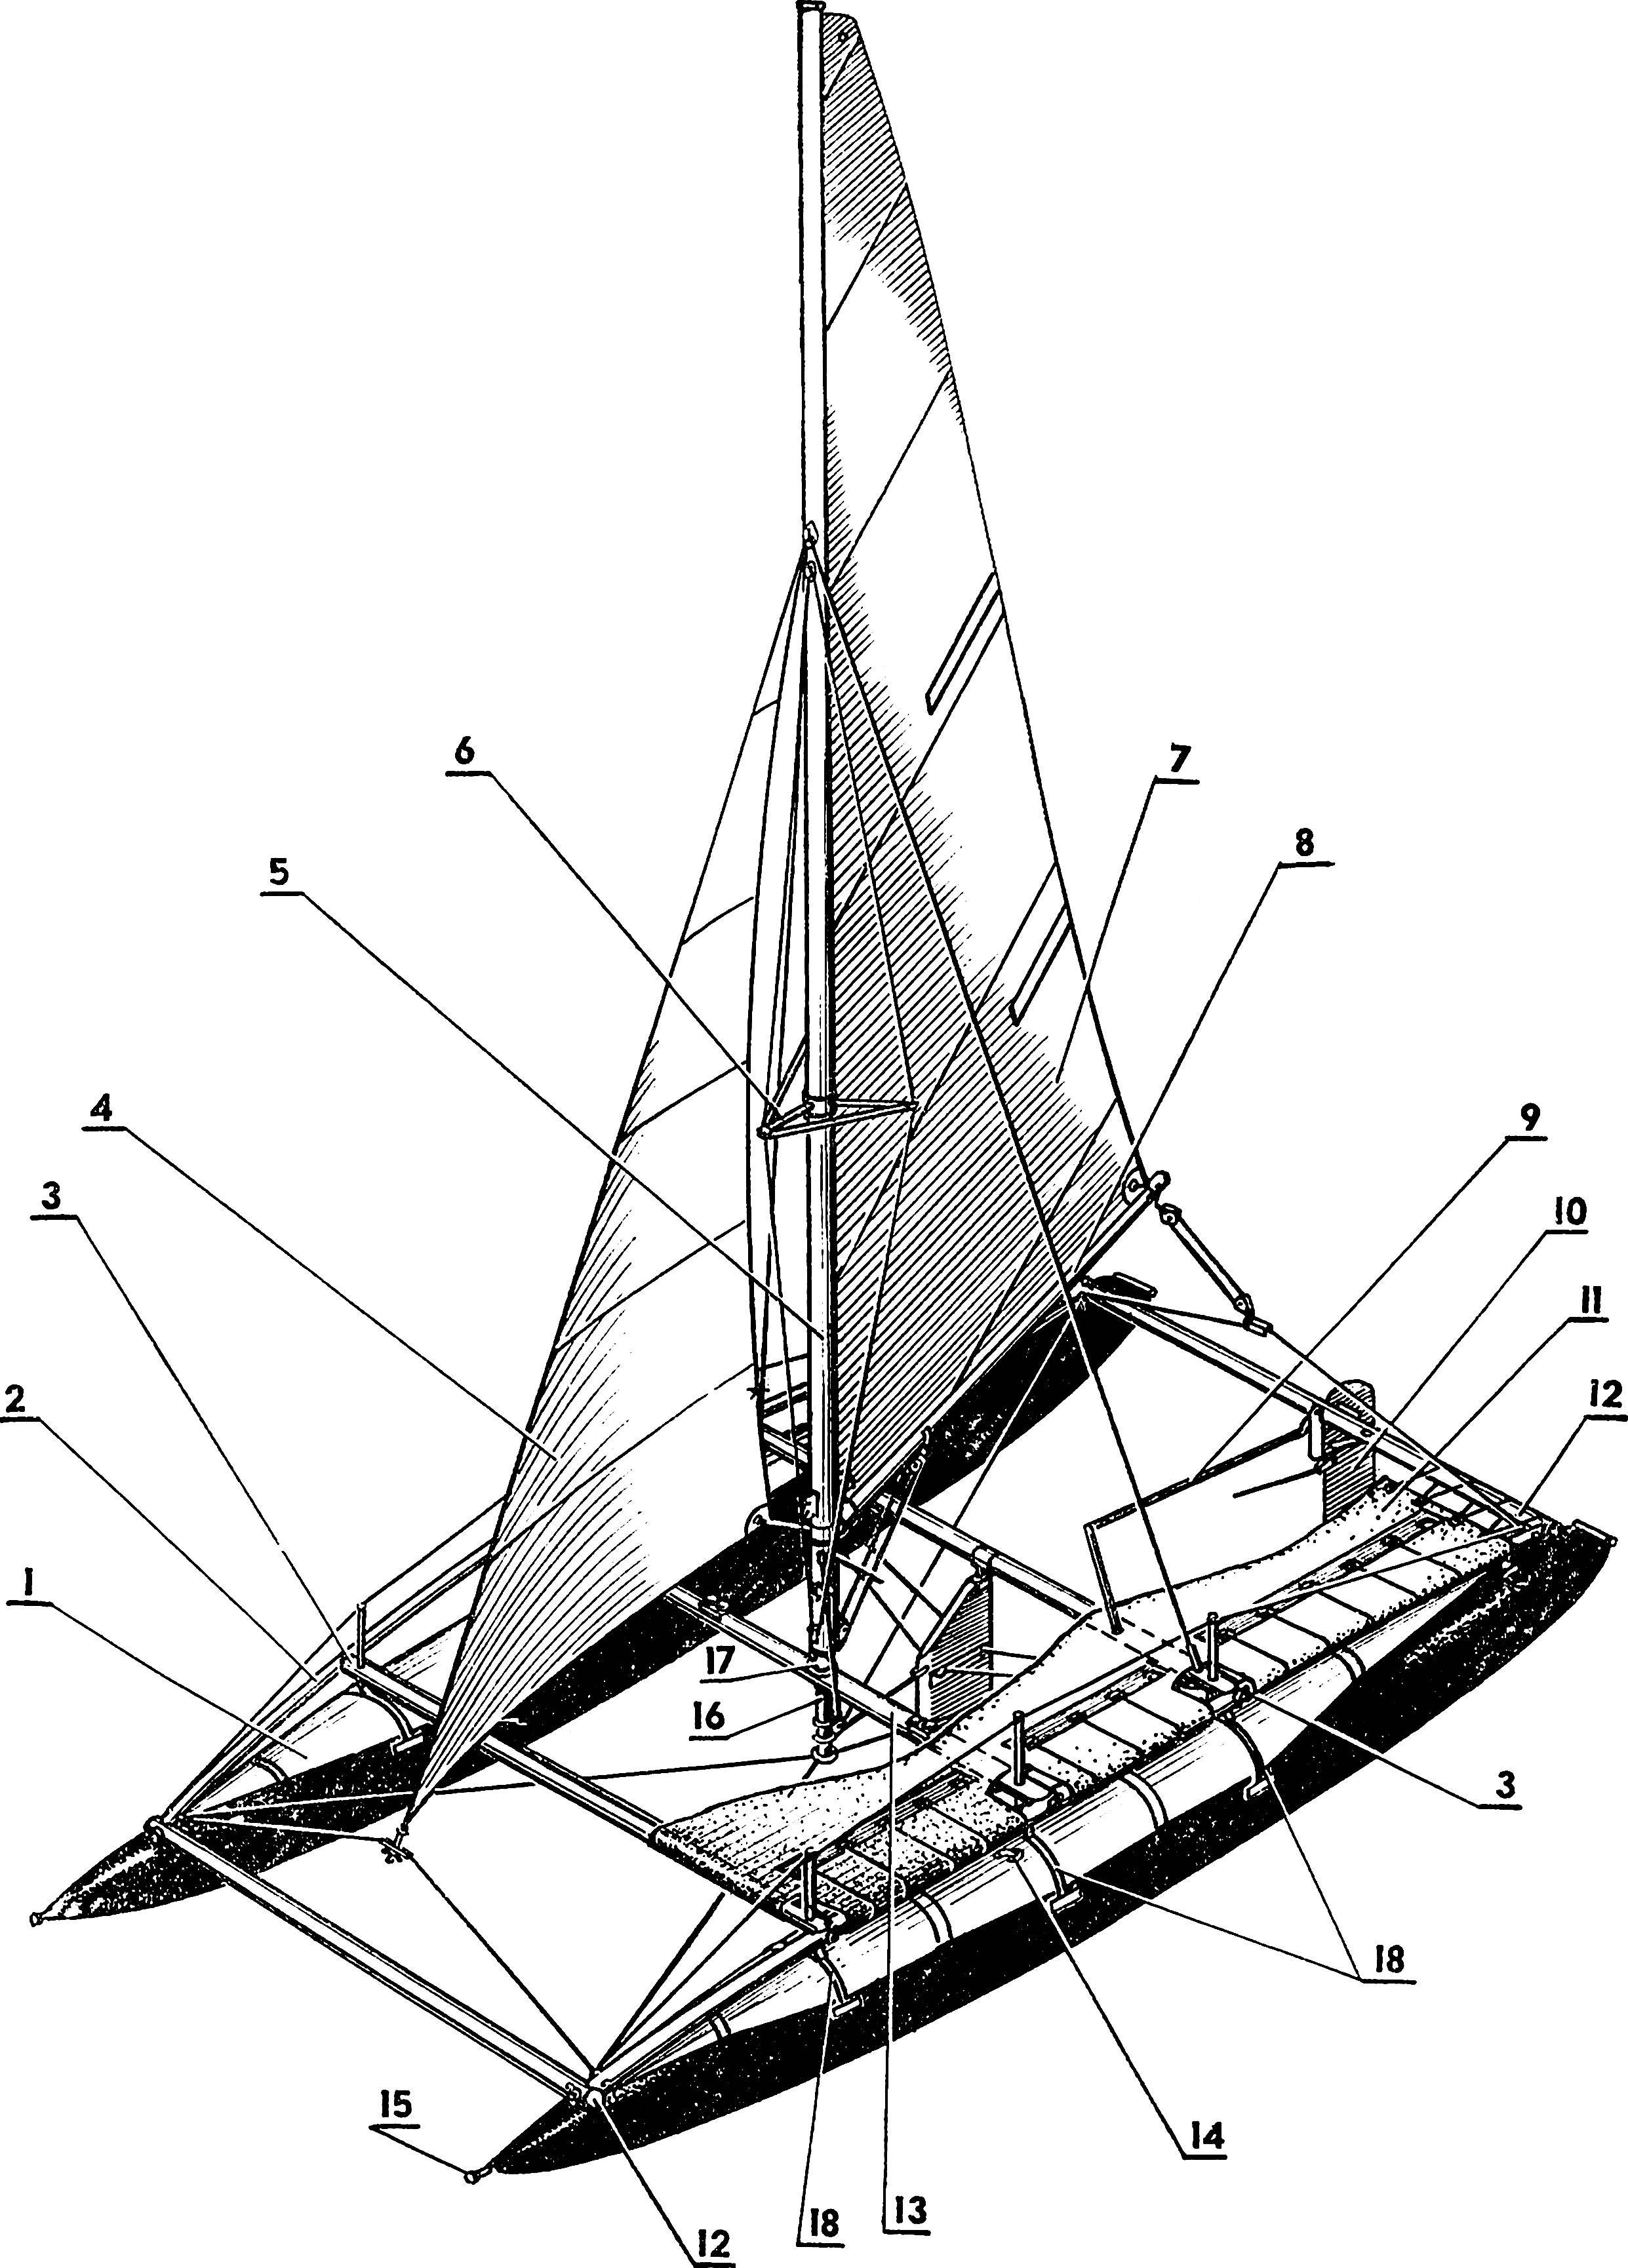 Fig. 2. The General structure of a catamaran.